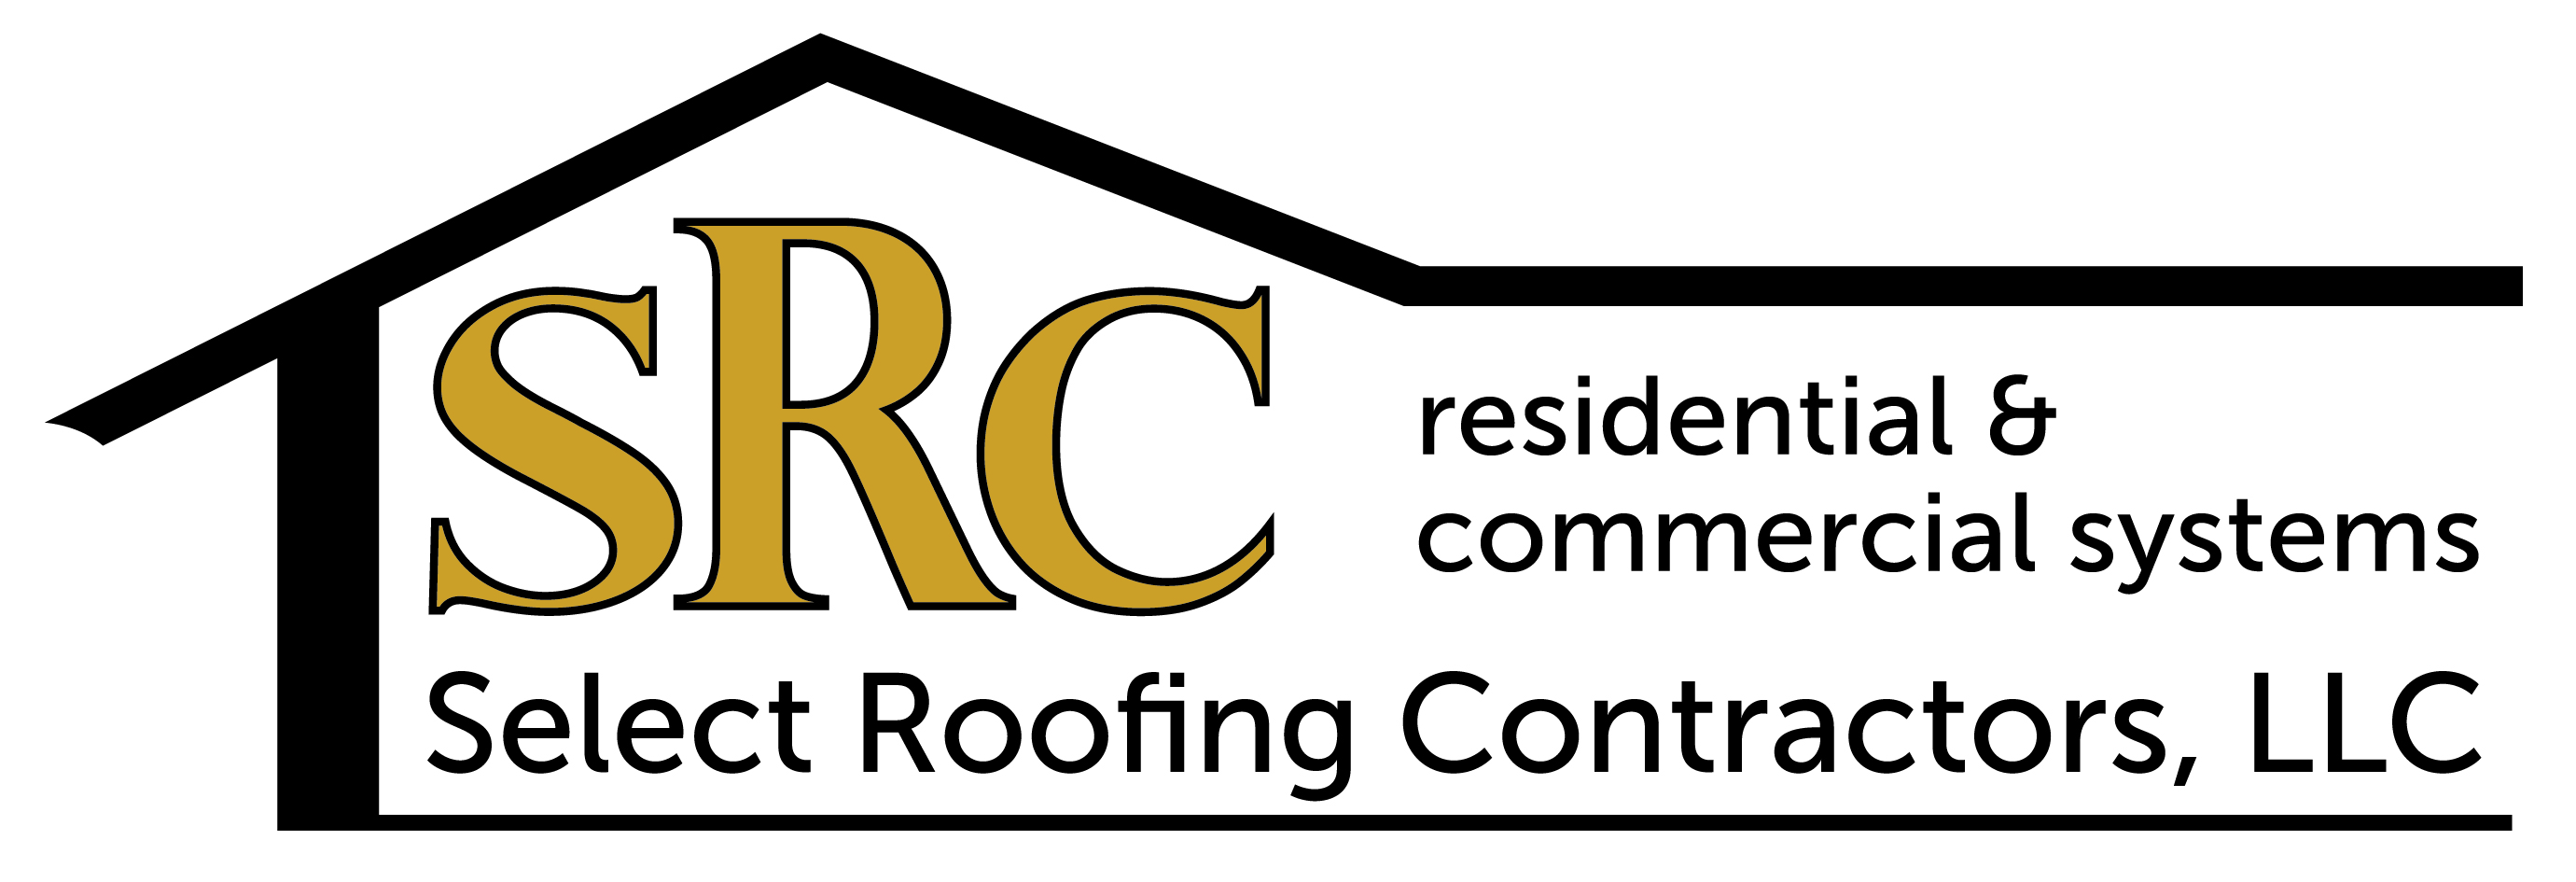 Select Roofing Contractors, LLC